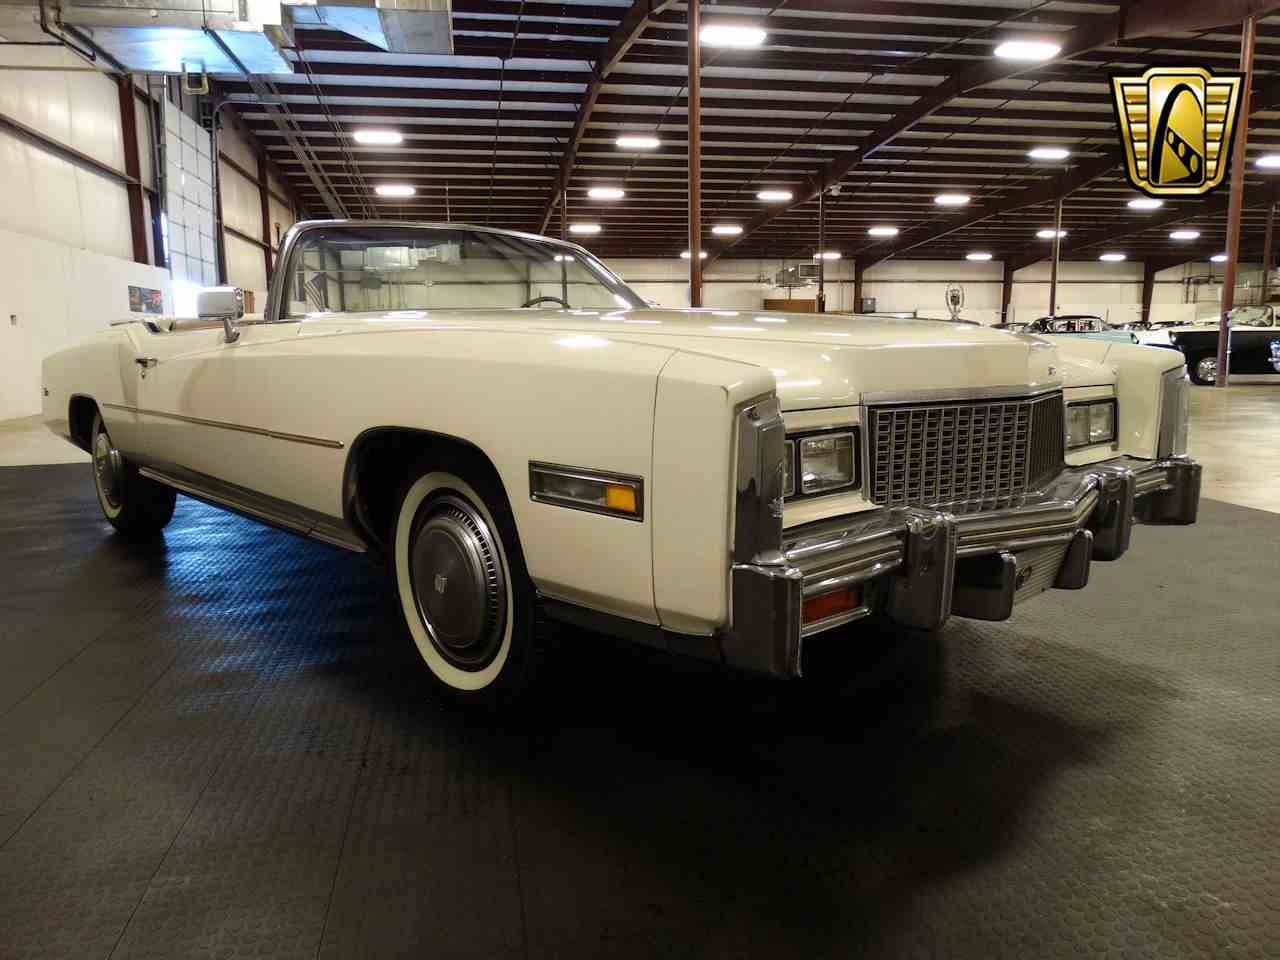 luxury condition loved shows mint hayes memphis a bling isaac limo cadillac this as of pin little